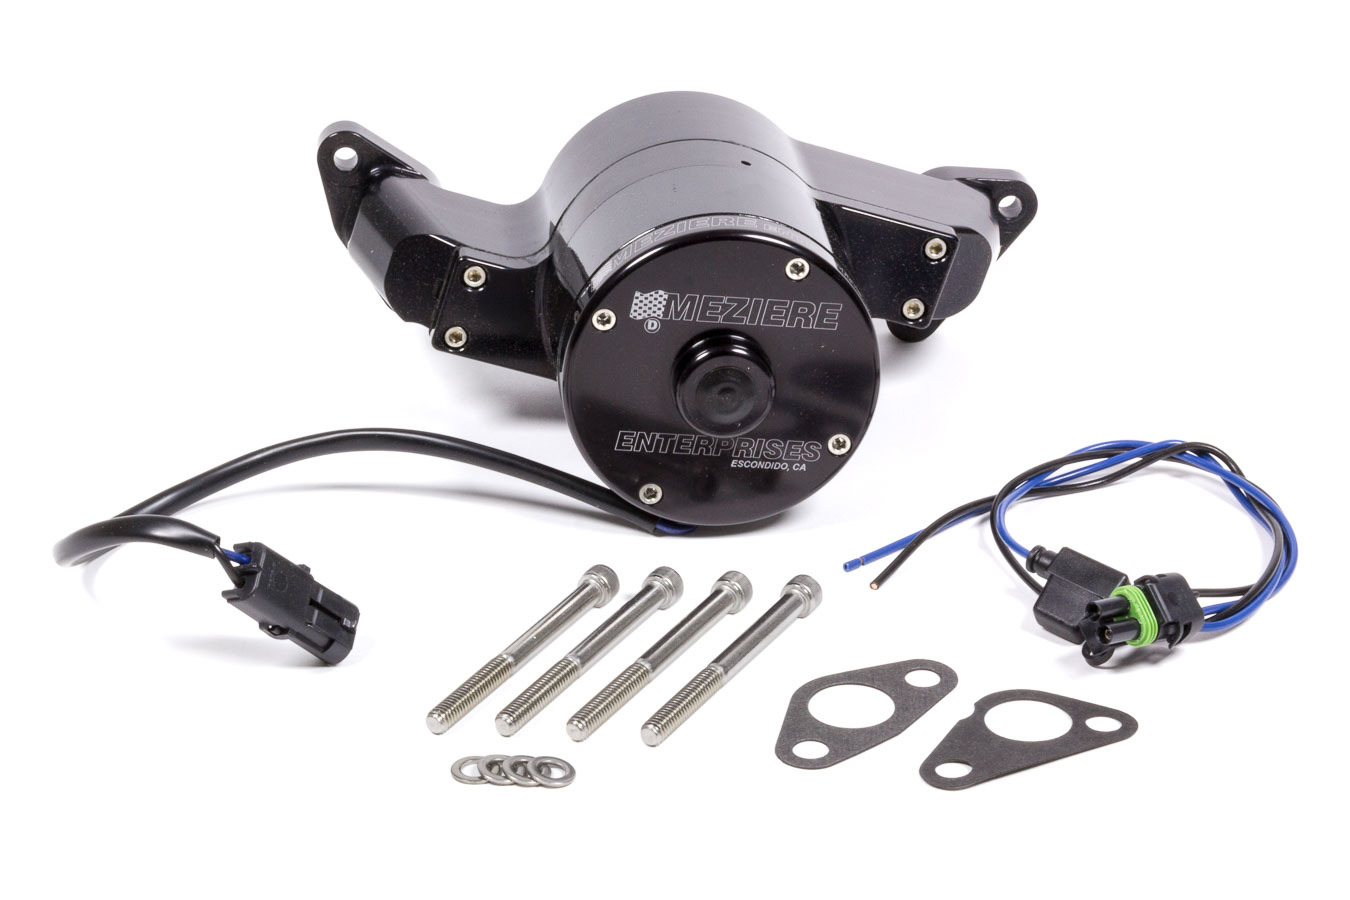 Meziere WP111SHD Water Pump, Electric, 100 Series, 1 in NPT Female Inlet, Gaskets / Hardware / Wiring, Aluminum, Black Anodized, Small Block Ford, Kit